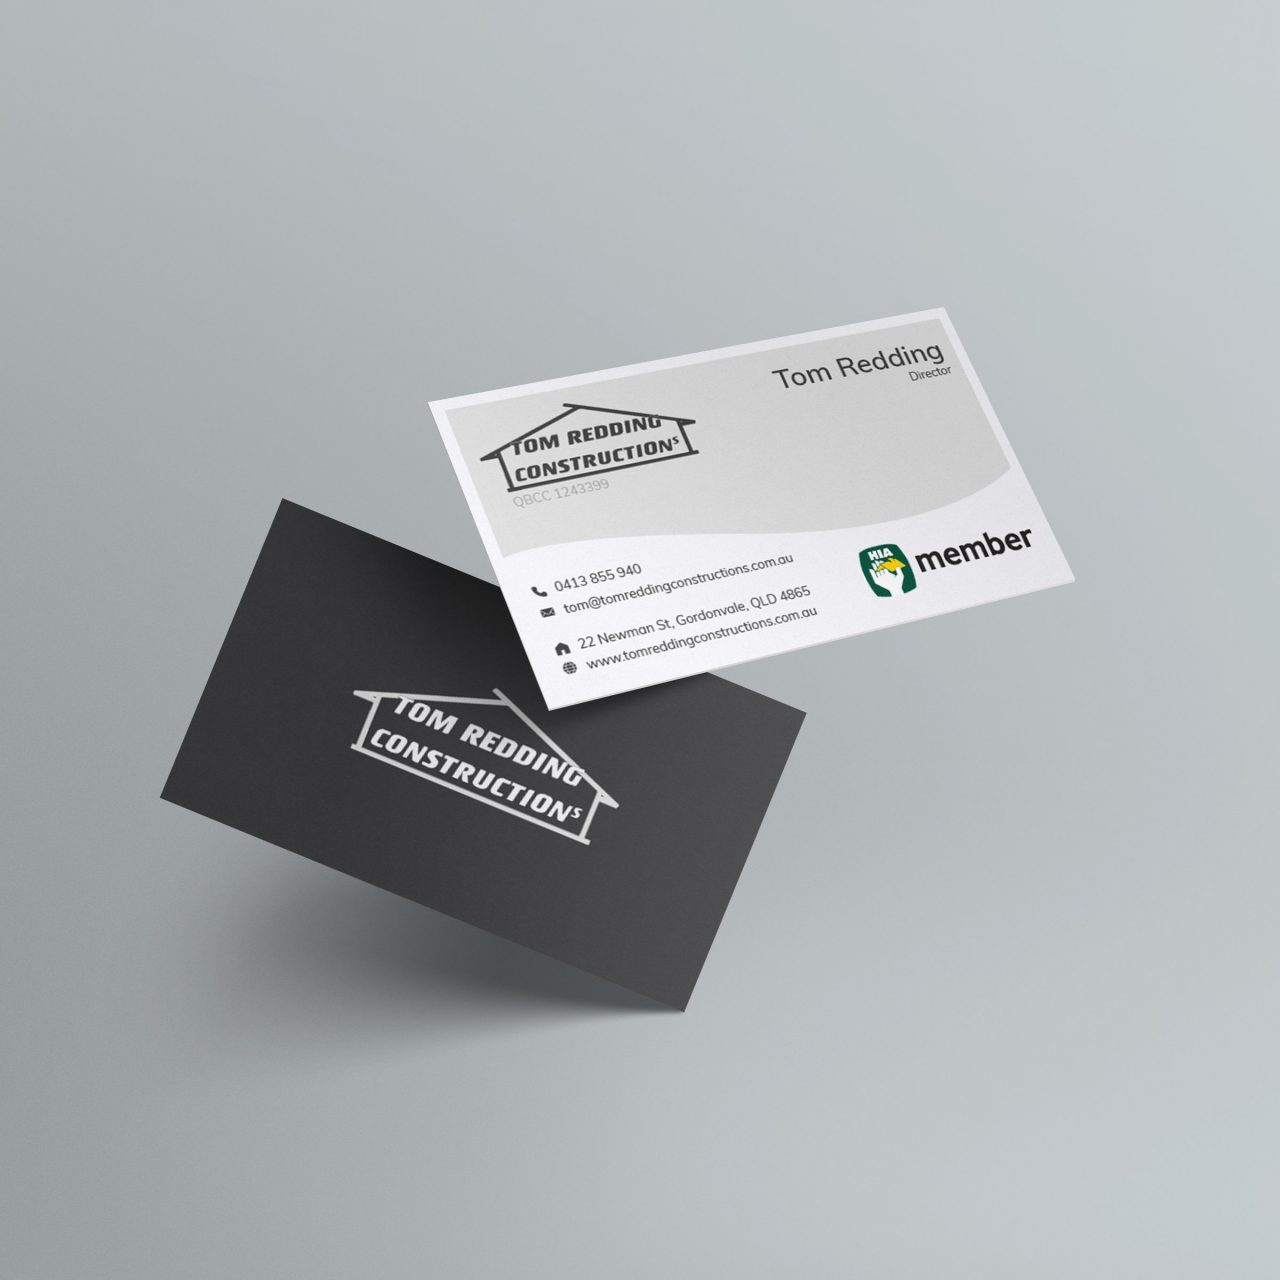 Tom Redding Constructions Business Cards